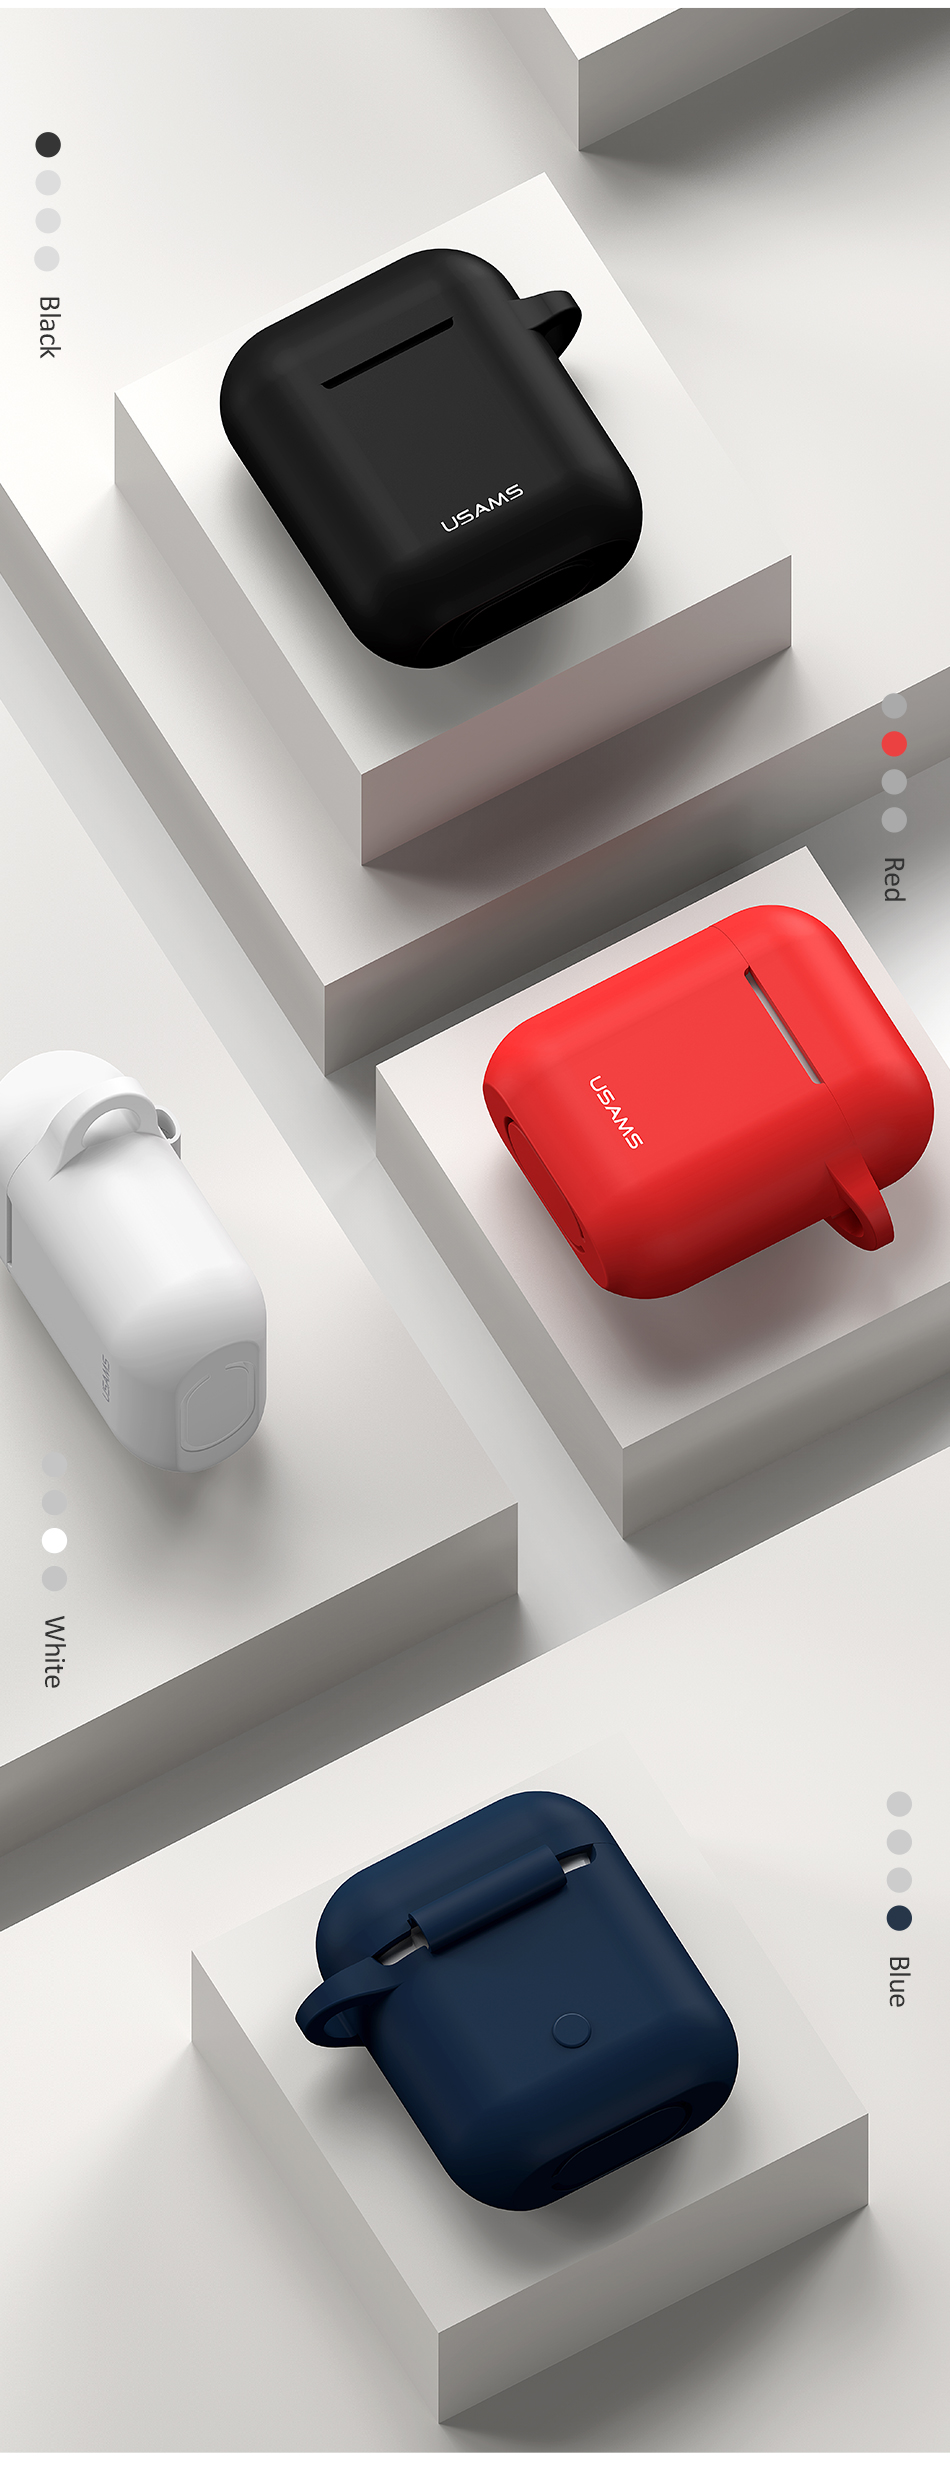 20180627-US-BH423-AirPods_11